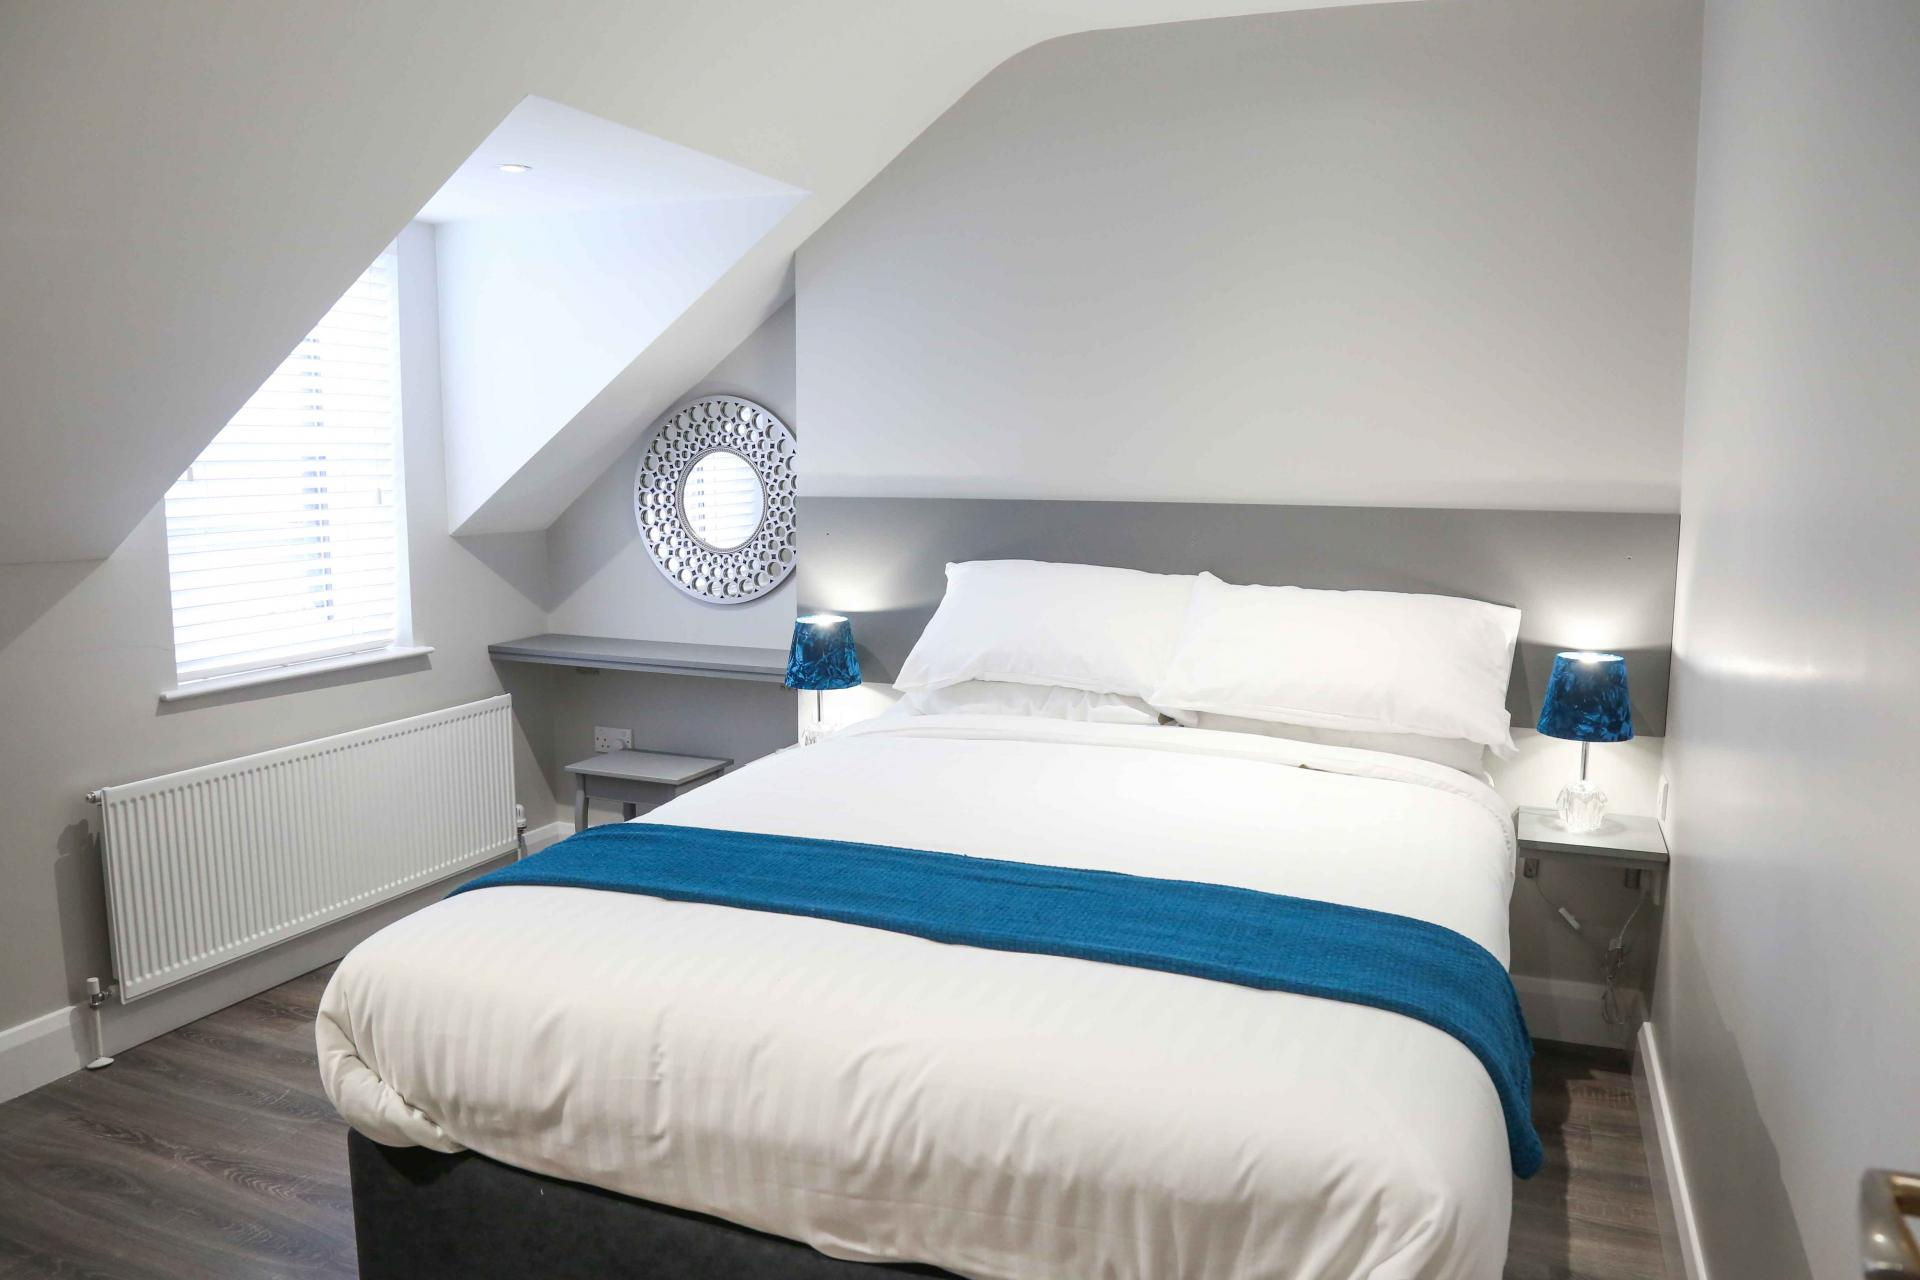 Bedroom at Eglantine Apartments - Citybase Apartments